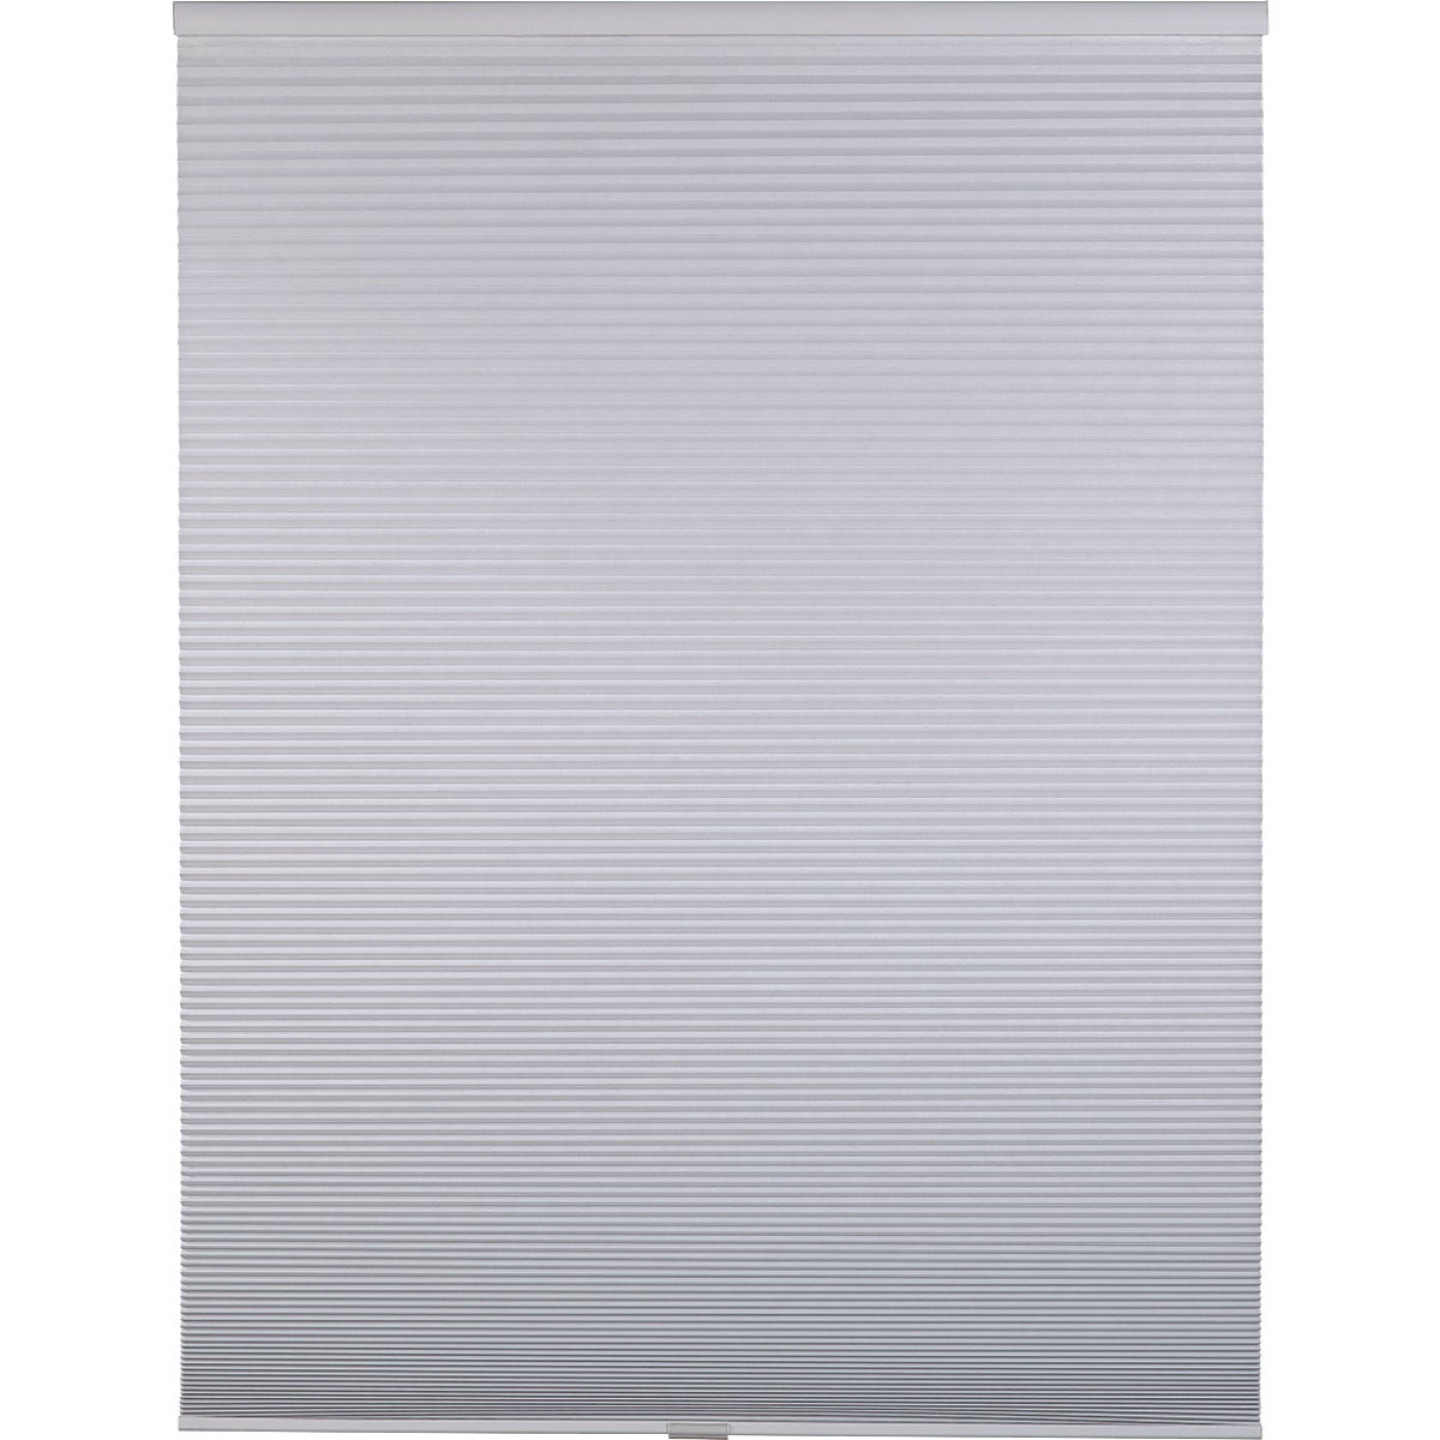 Home Impressions 1 In. Room Darkening Cellular White 47 In. x 72 In. Cordless Shade Image 1